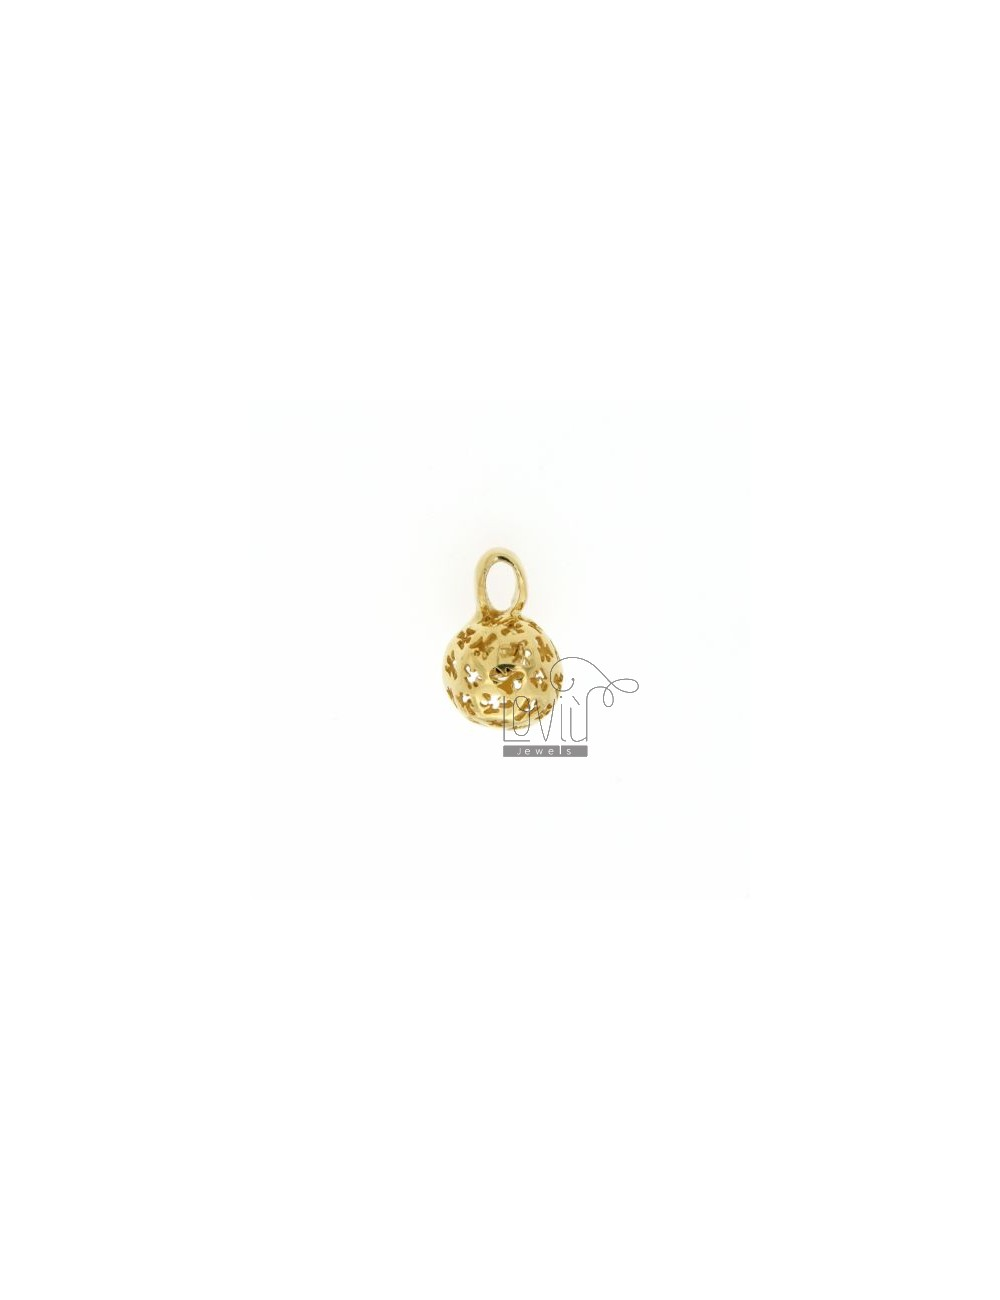 CALL ANGELS PENDANT 11 MM WITH ANGELS IN PERFORATED AG GOLD PLATED TIT 925